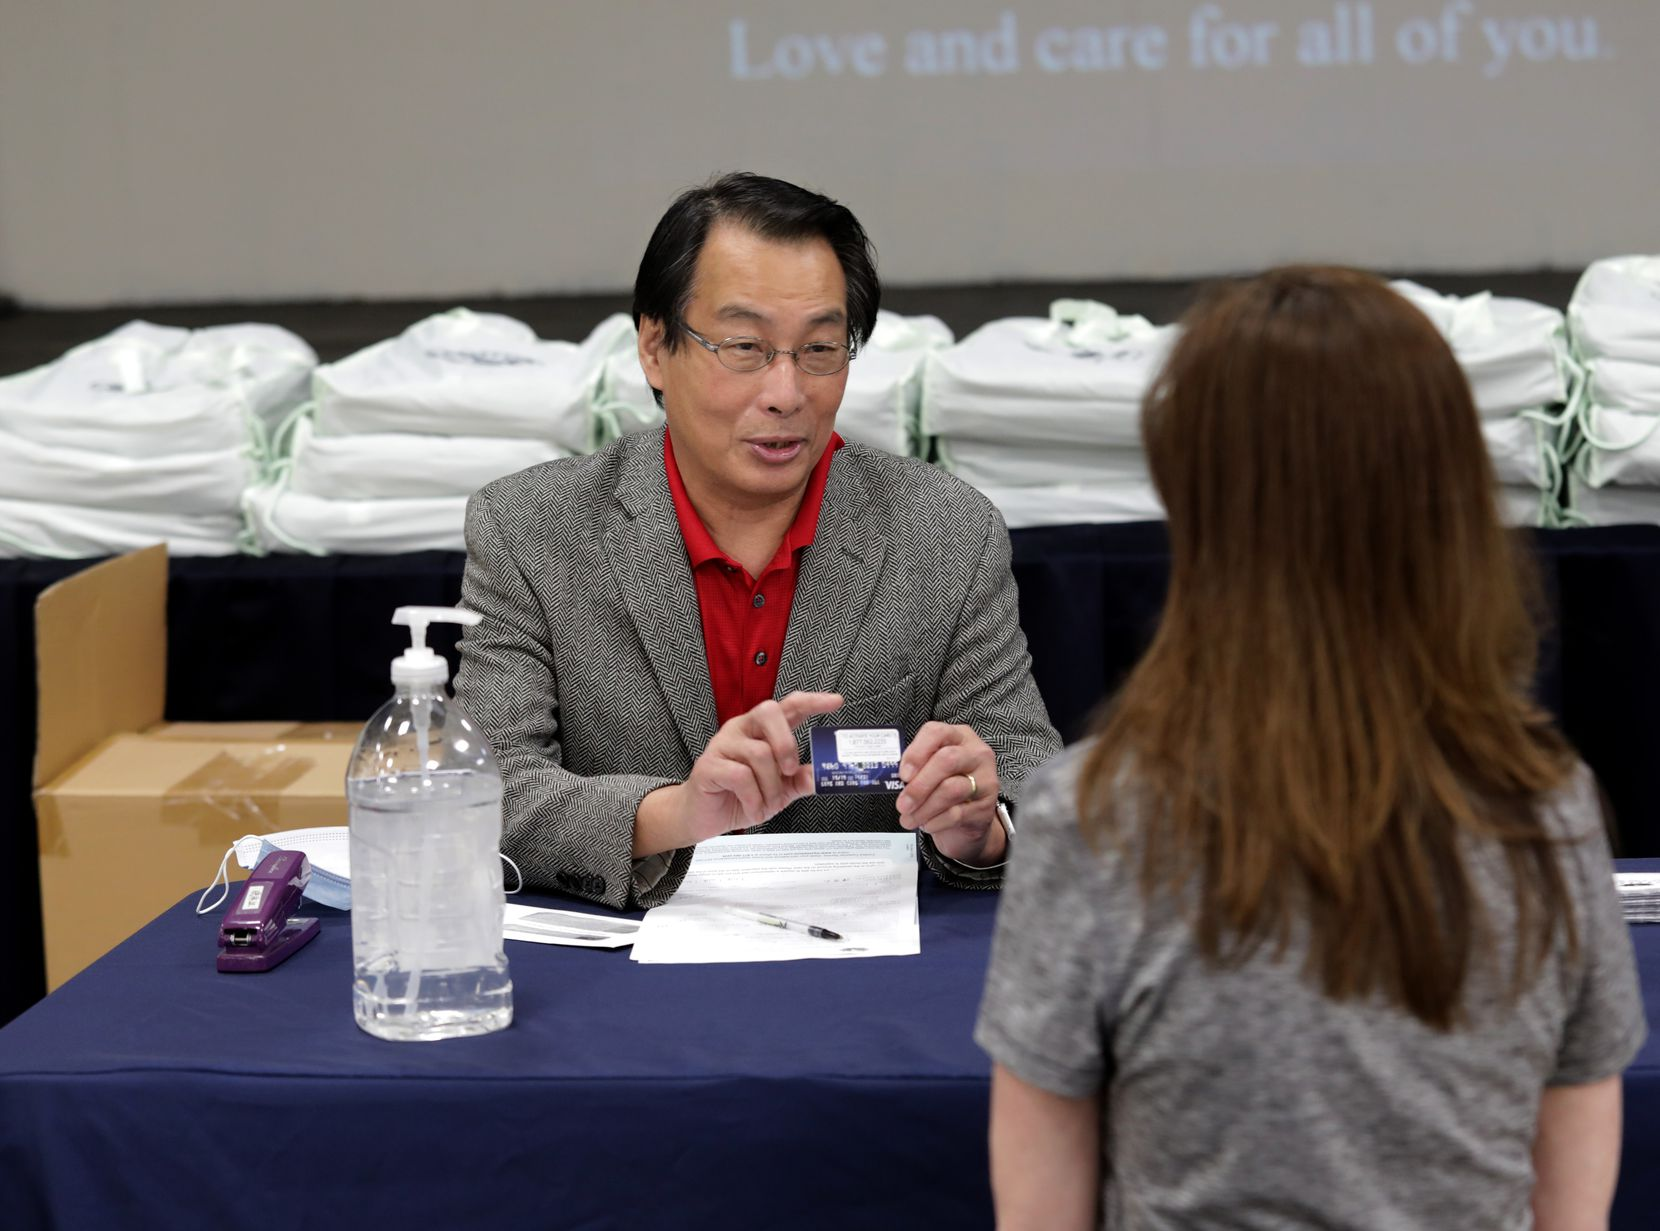 Addison mayor Joe Chow, left, displays a pre-paid giftcard to Tia Bourne.  The cards are being given to families displaced in a recent Addison fire as they receive help at the Tzu Chi foundation in Richardson, TX, on Apr. 25, 2021. (Jason Janik/Special Contributor)